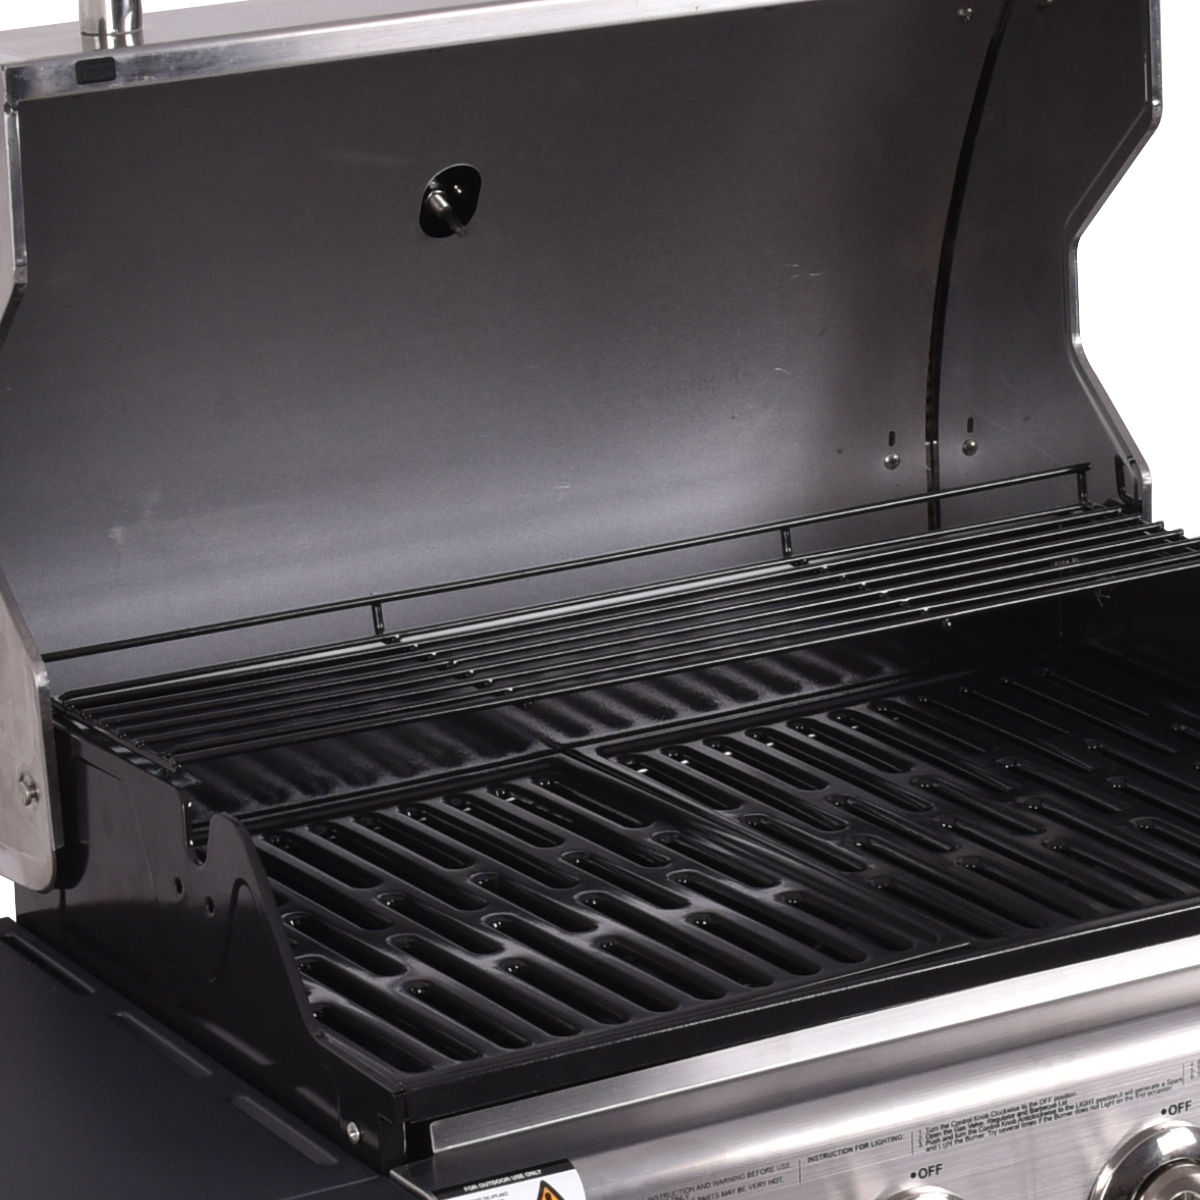 Costway 4 Burner Gas Porpane Grill Stainless Steel Outdoor Patio Cooking BBQ w/ Casters - image 7 of 9